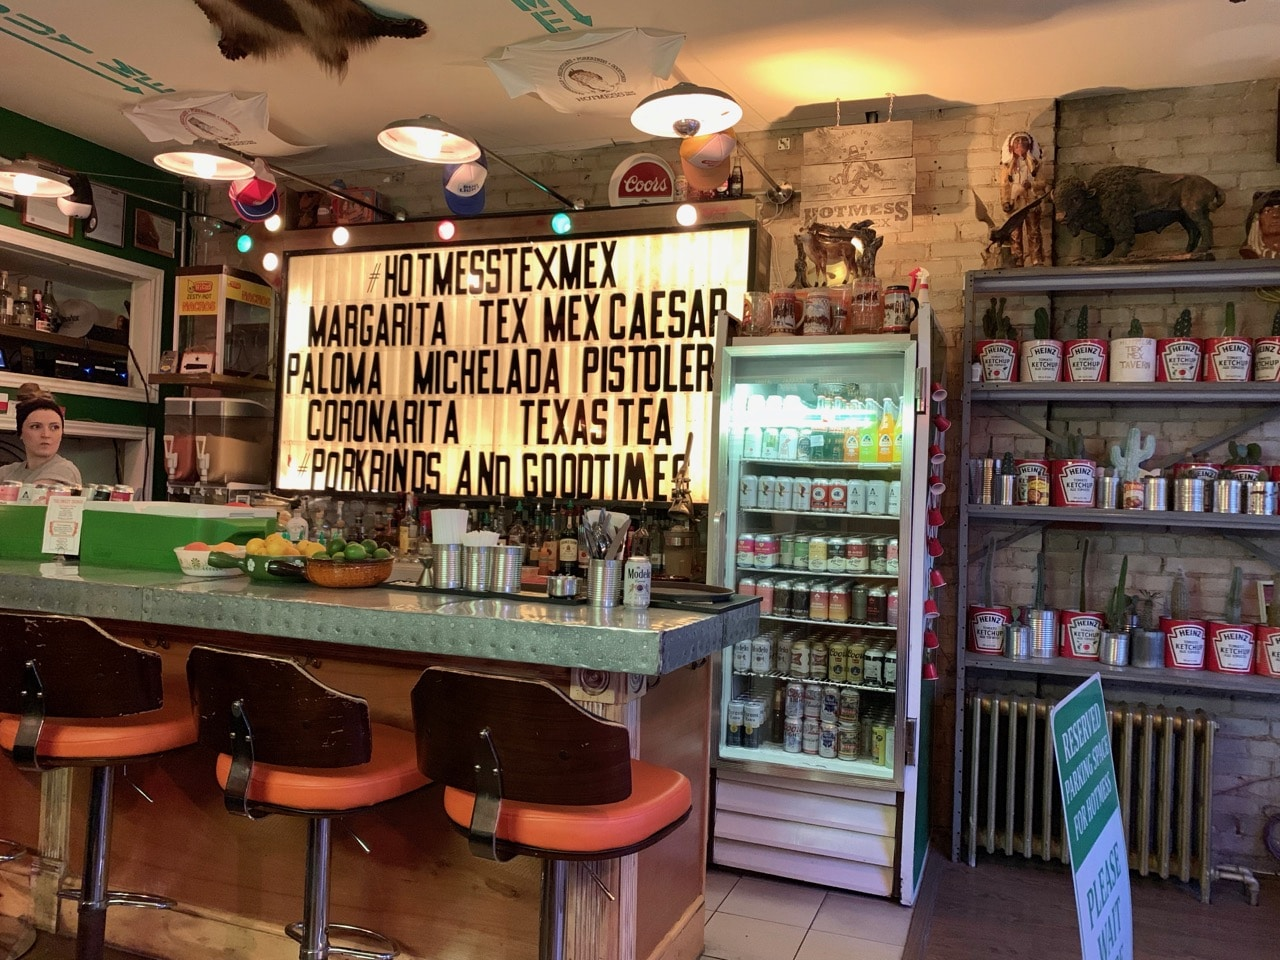 The bar at Hotmess Tex Mex on College Street.